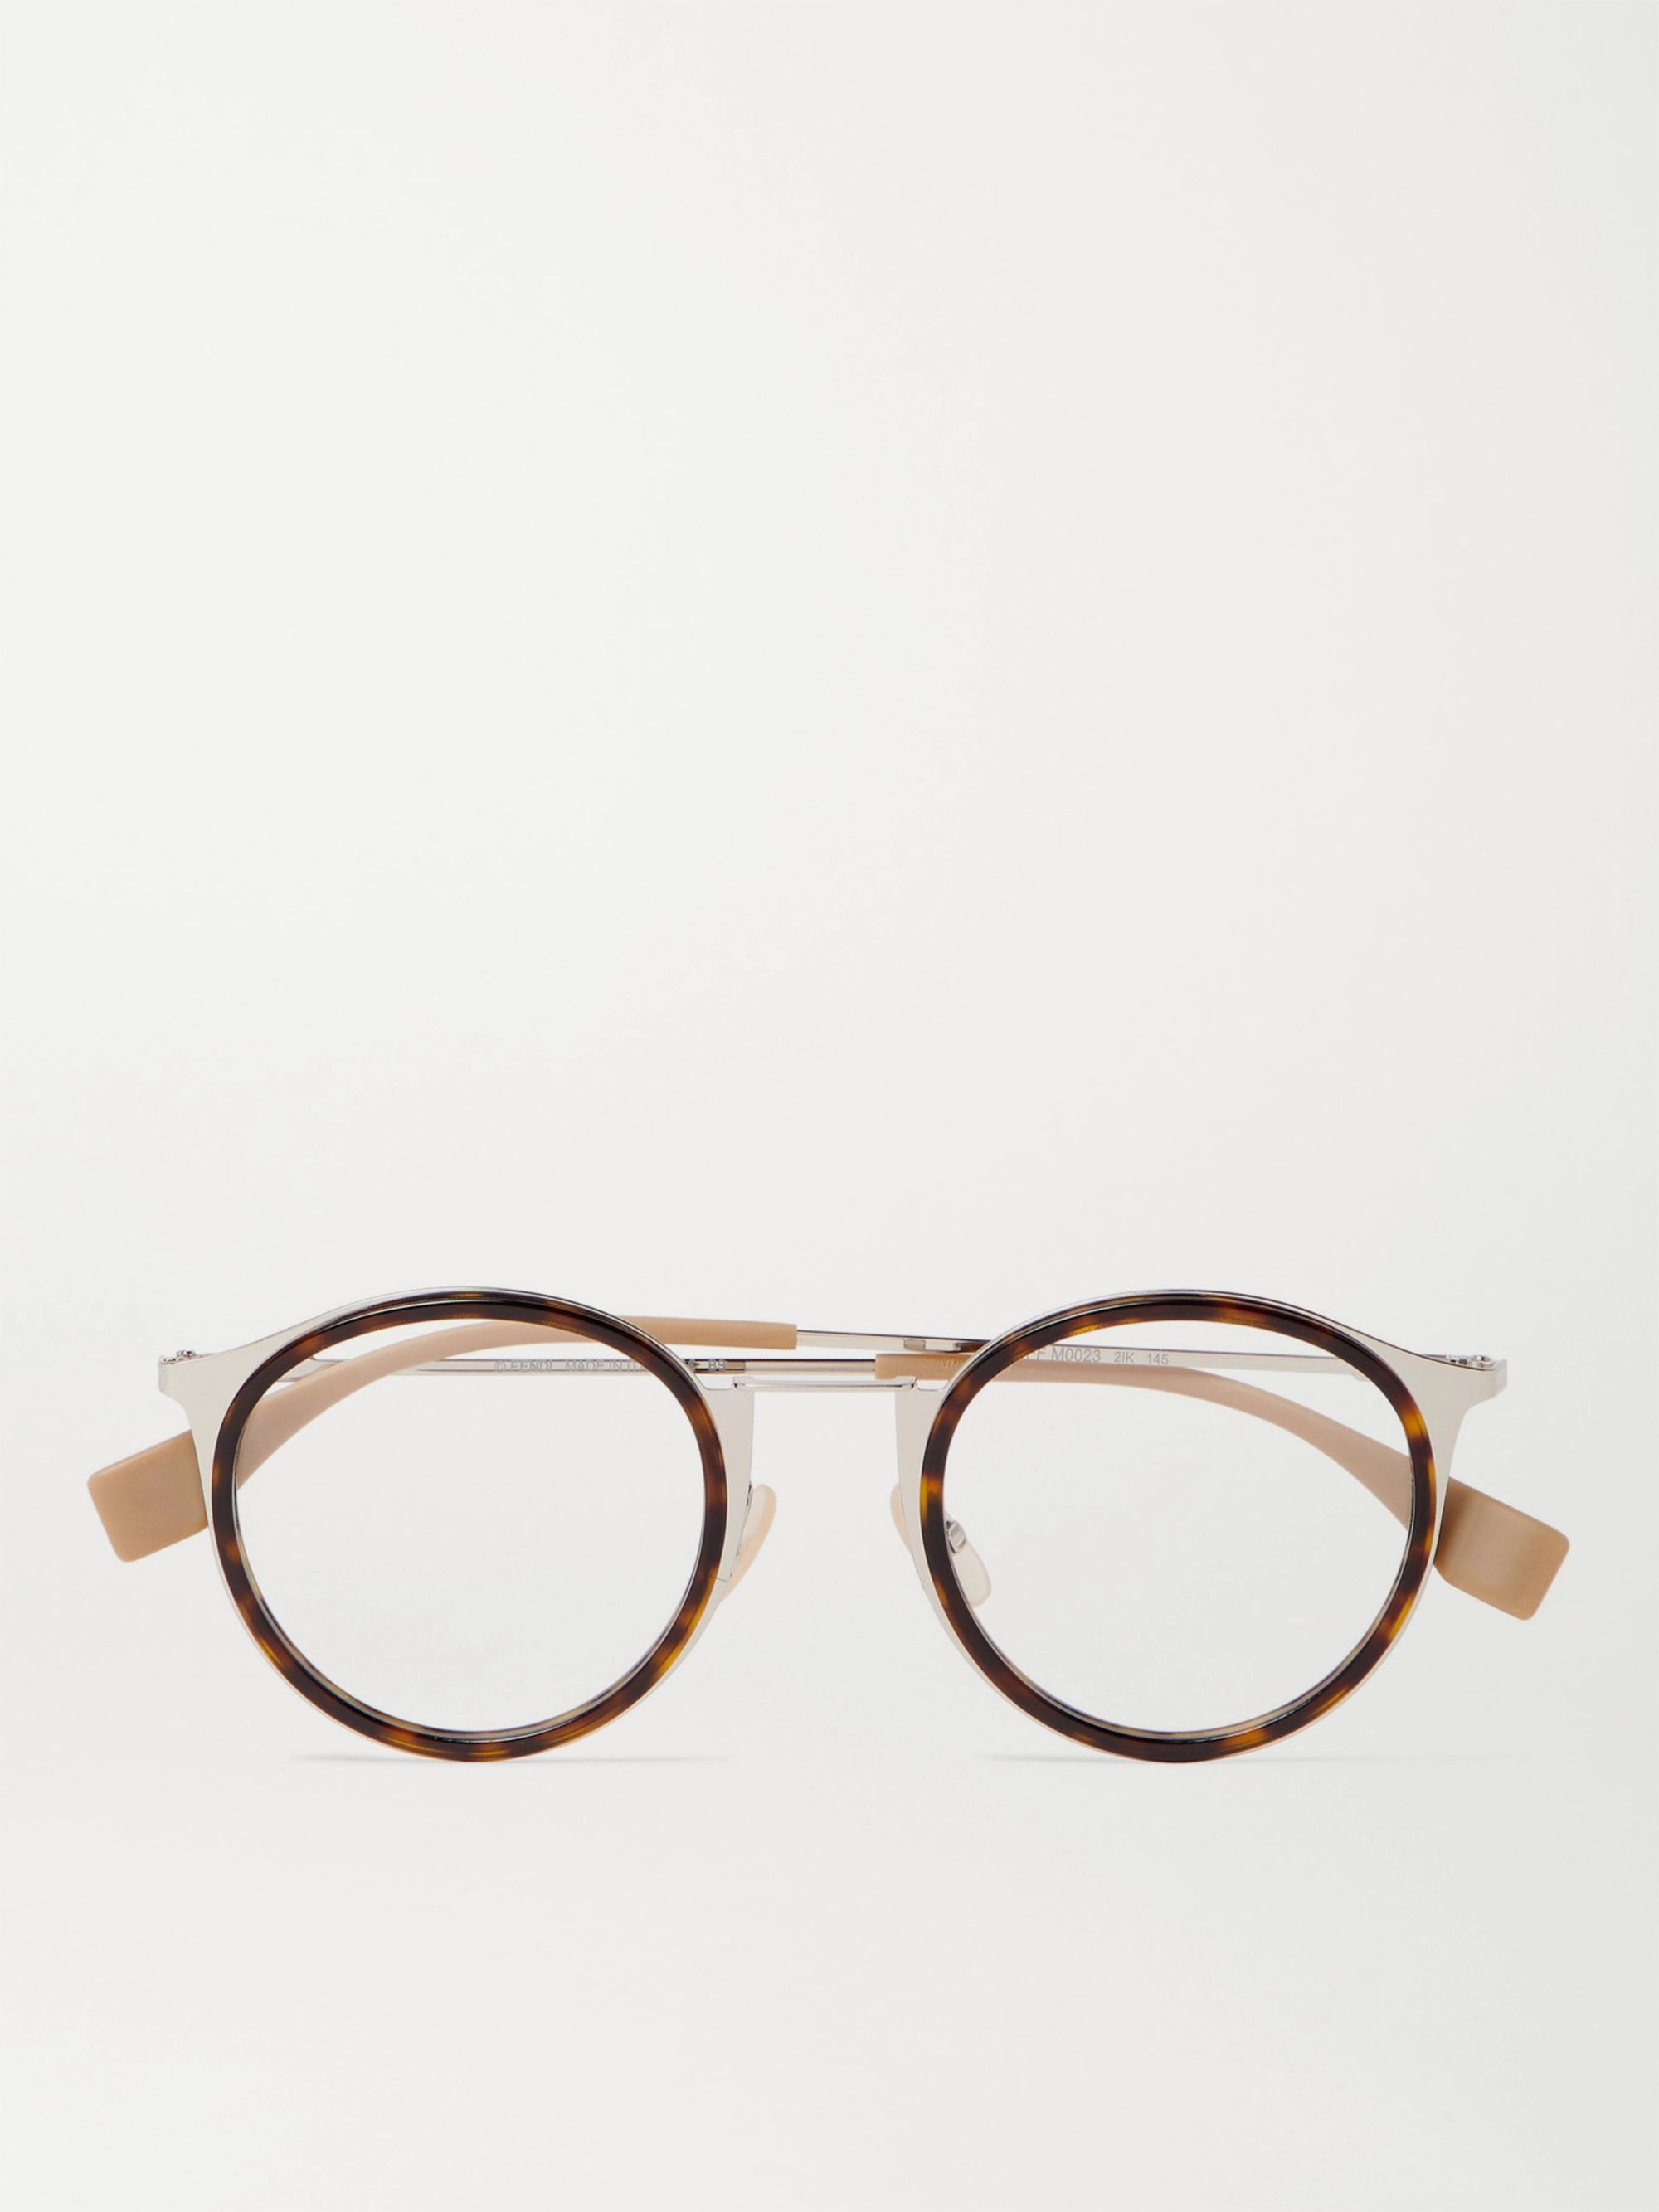 Fendi Round-Frame Tortoiseshell Acetate and Silver-Tone Optical Glasses